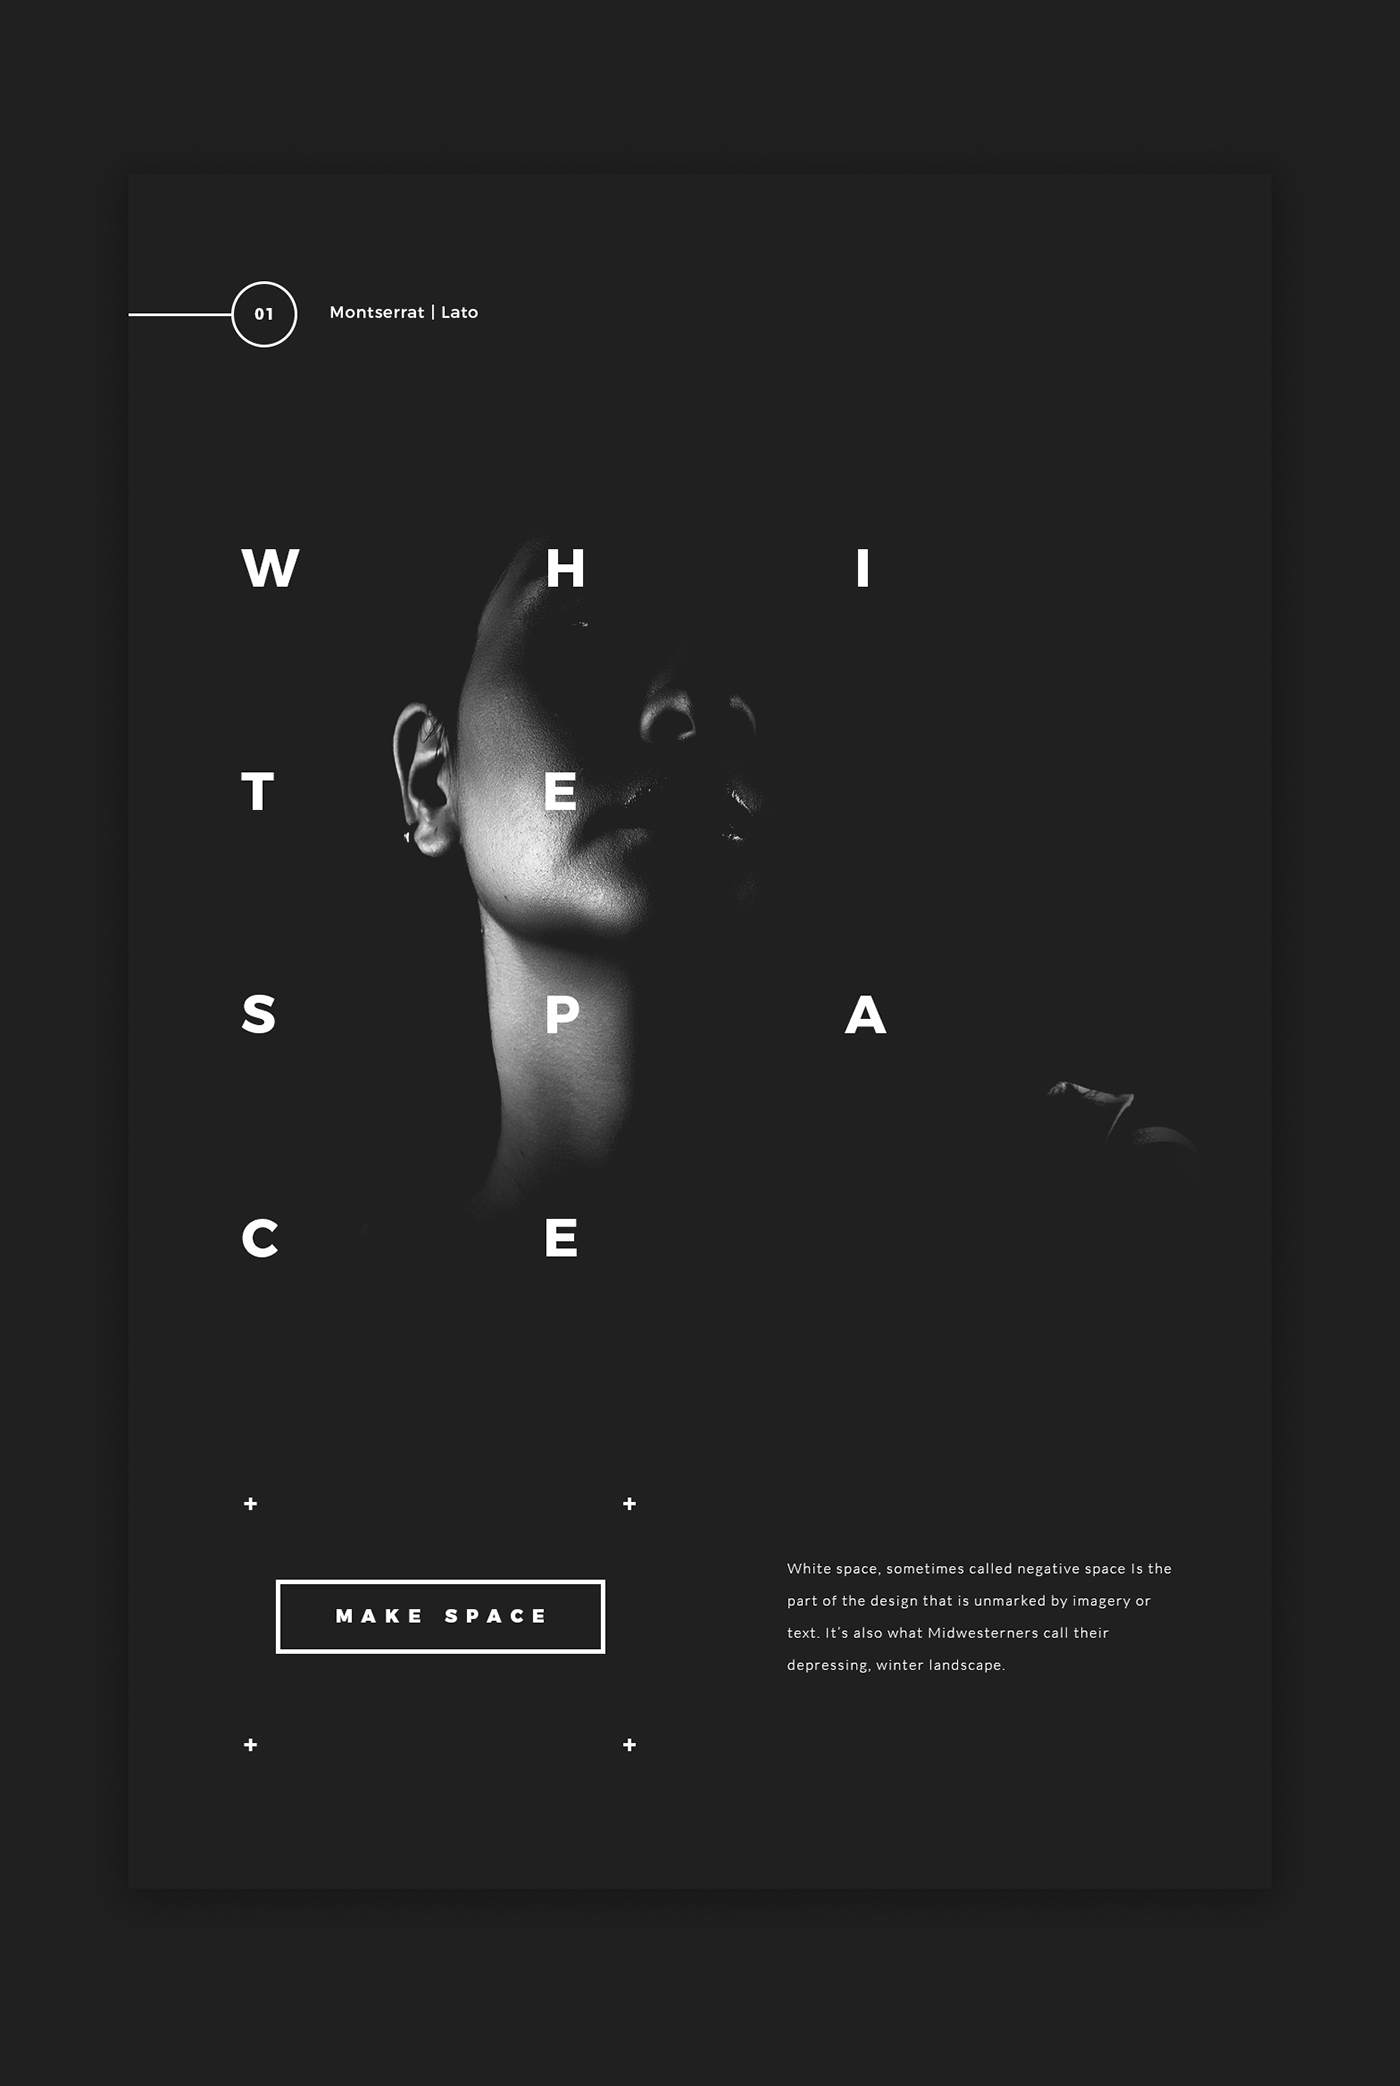 5 google fonts trends and combinations on behance google fonts used montserrat lato ccuart Gallery